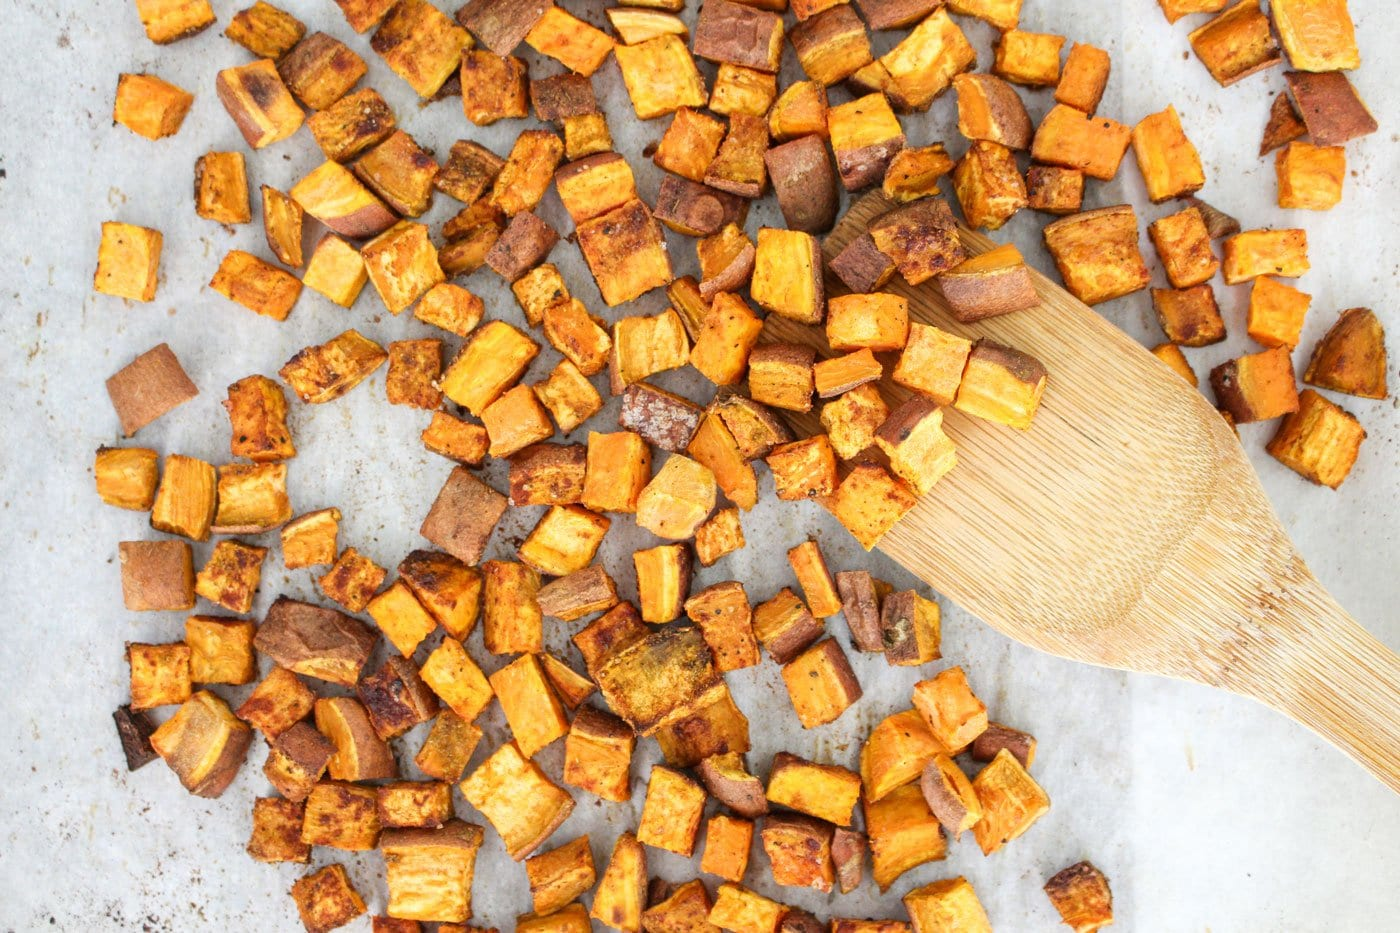 How-to-Roast-Sweet-Potatoes-1---FitLiving-Eats-by-Carly-Paige